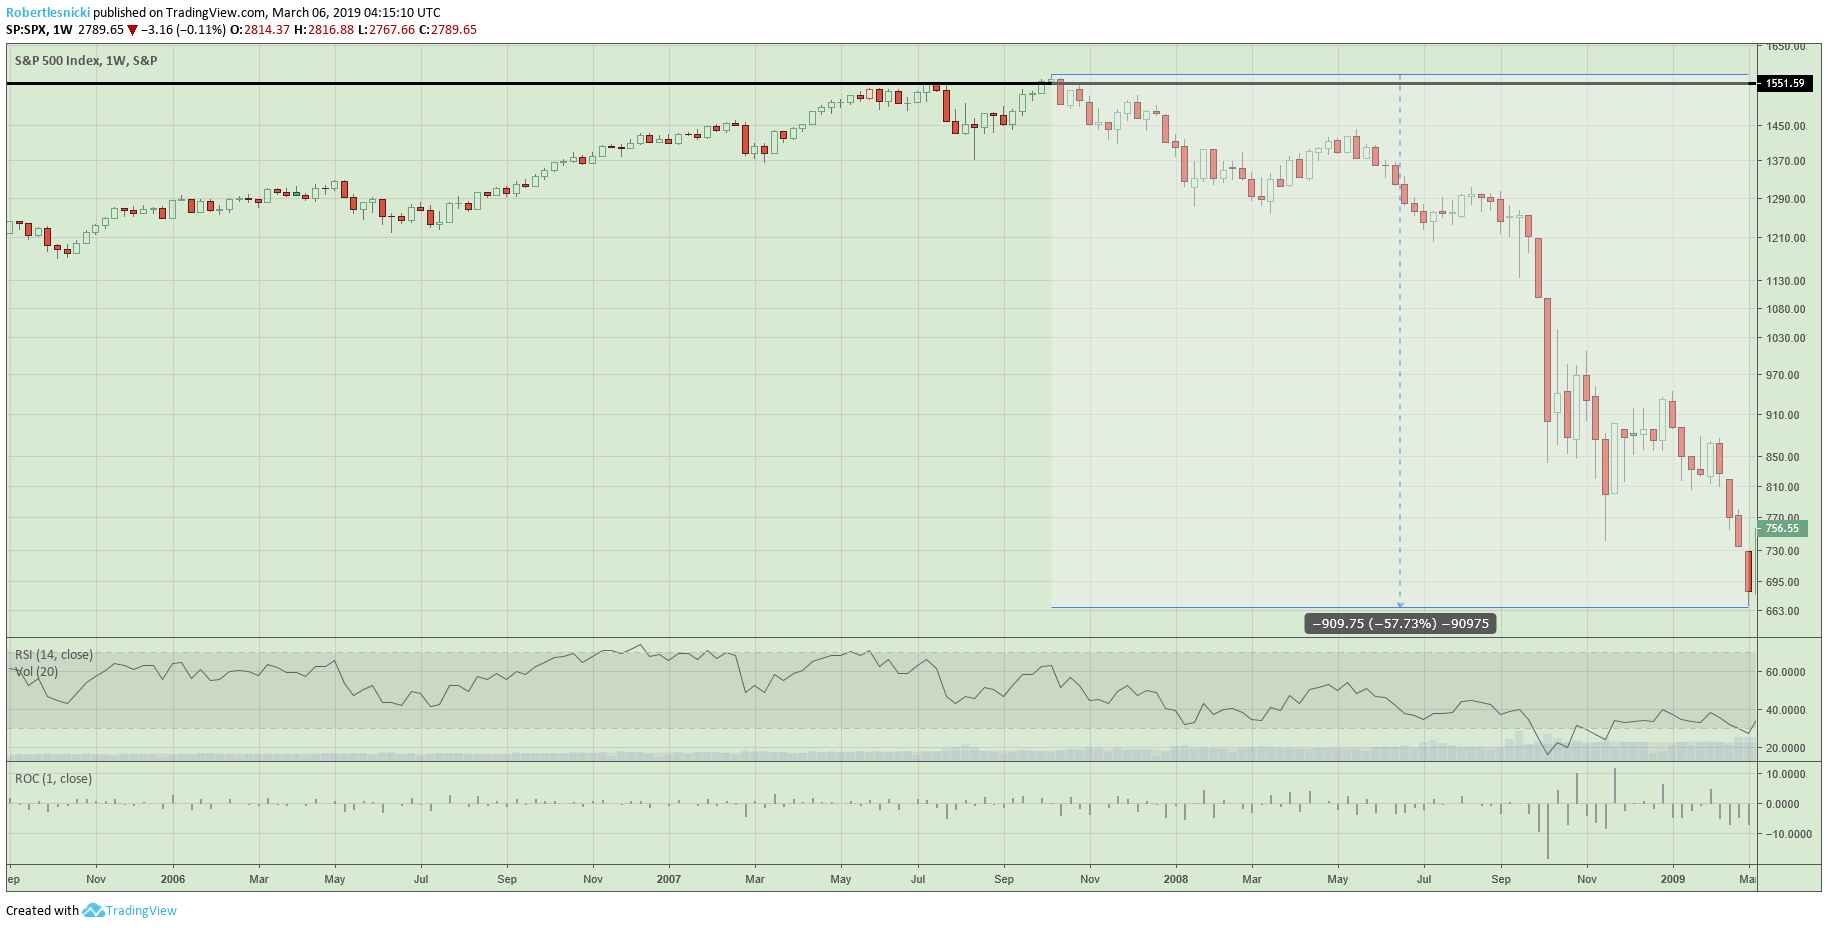 S&P 500 weekly chart from 2009 bottom